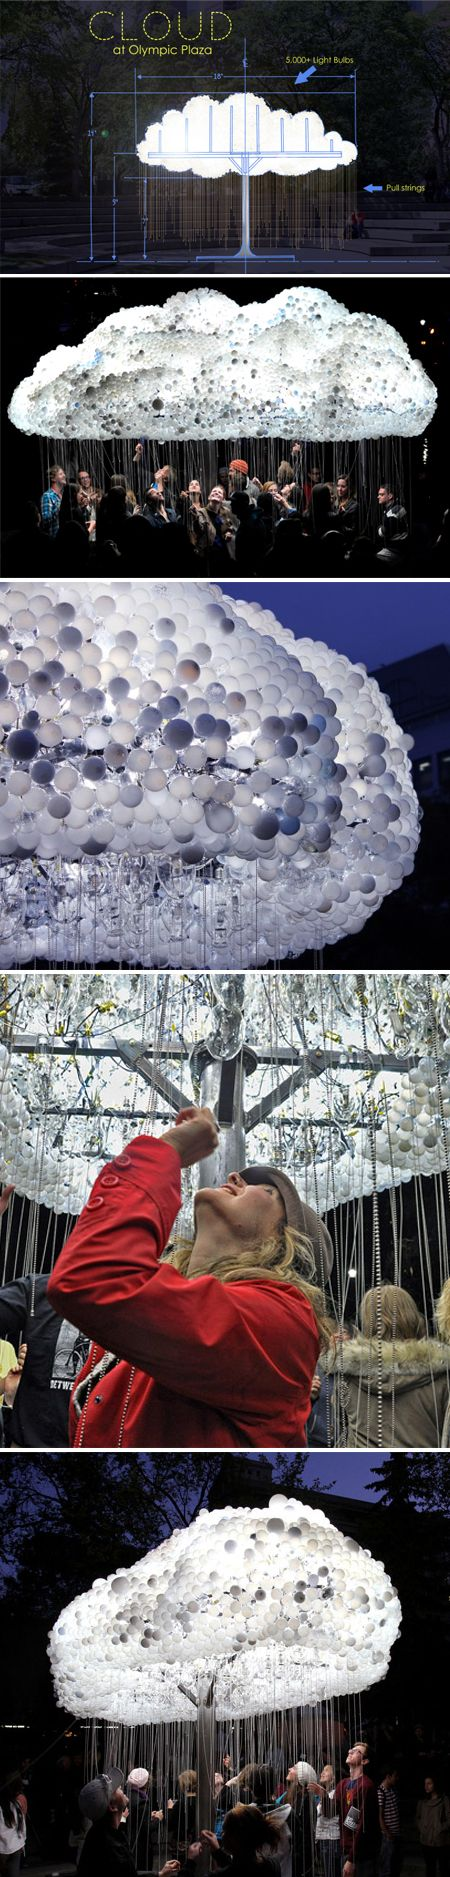 6,000 lightbulb art installation